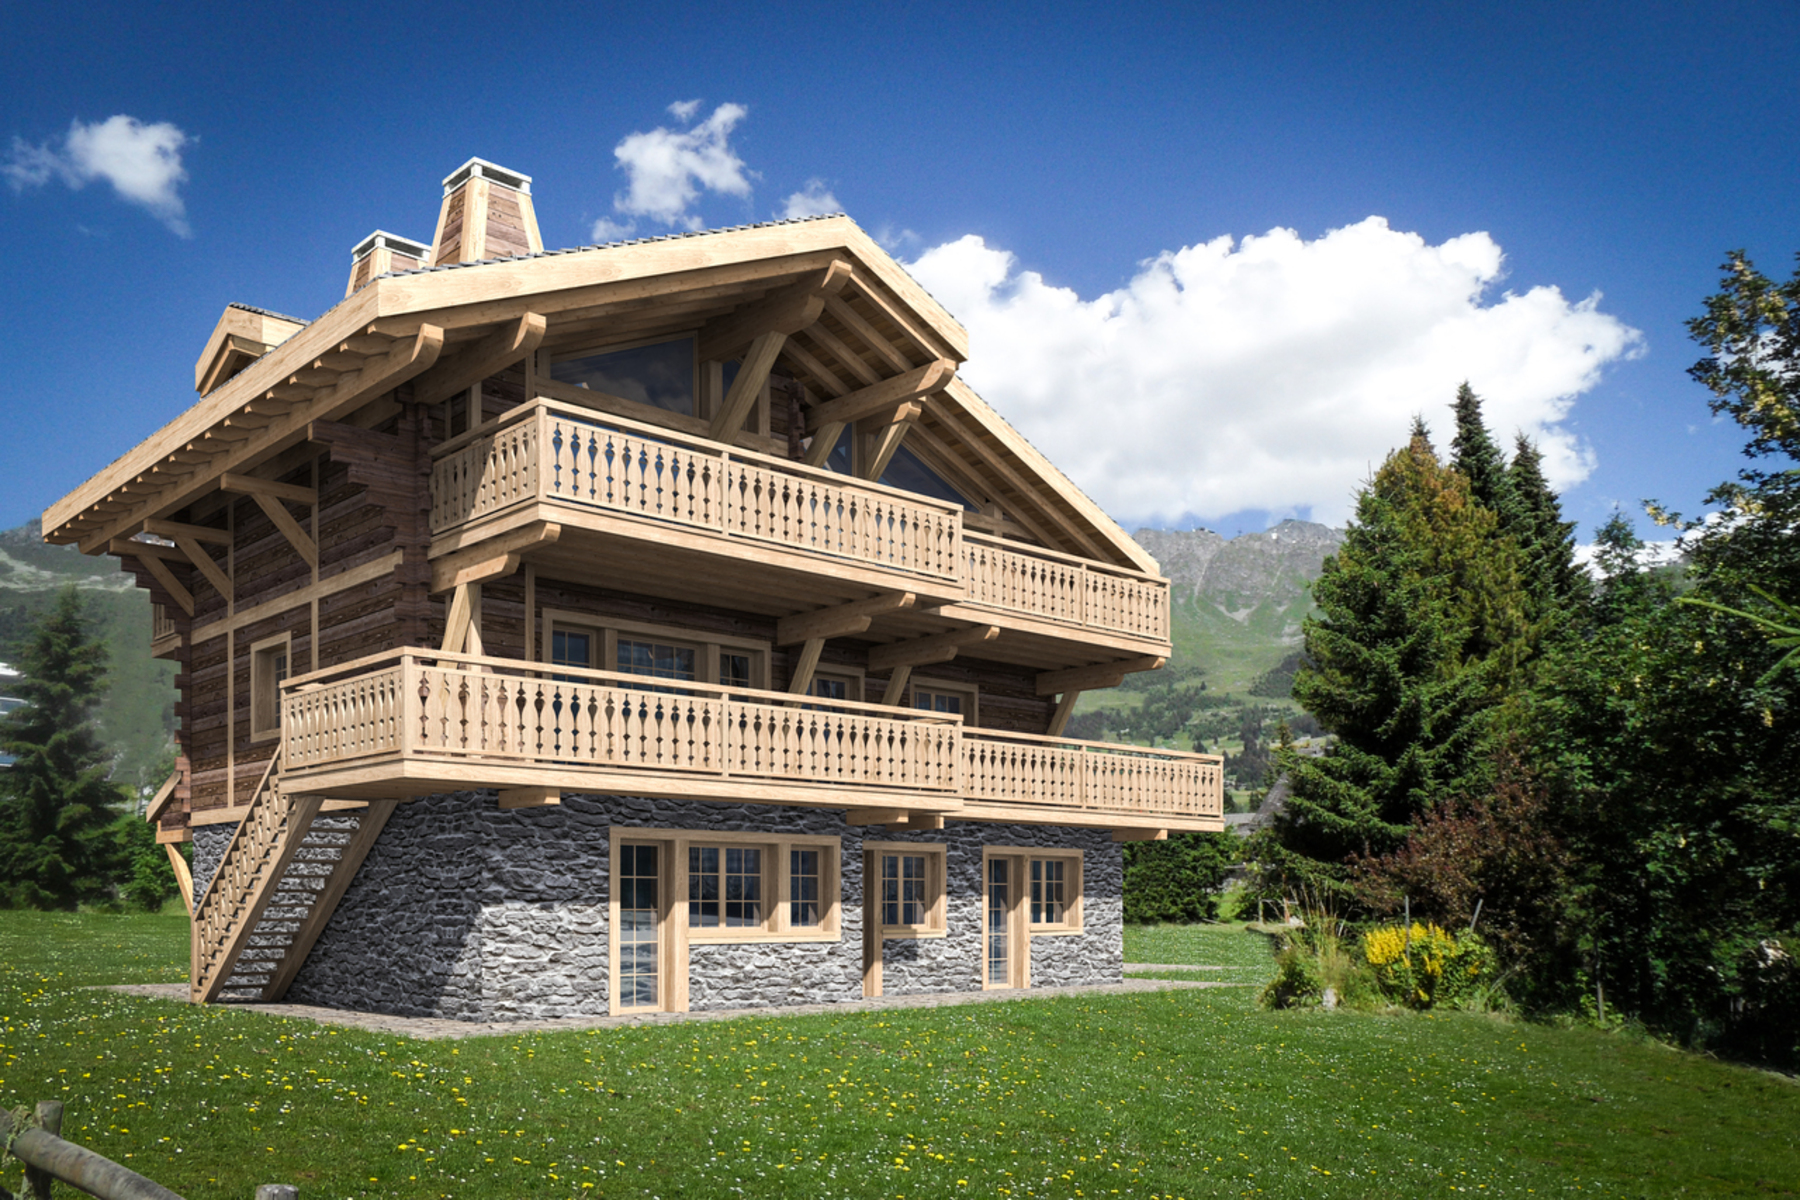 Single Family Home for Sale at Chalet SOMMETS Verbier, 1936 Switzerland